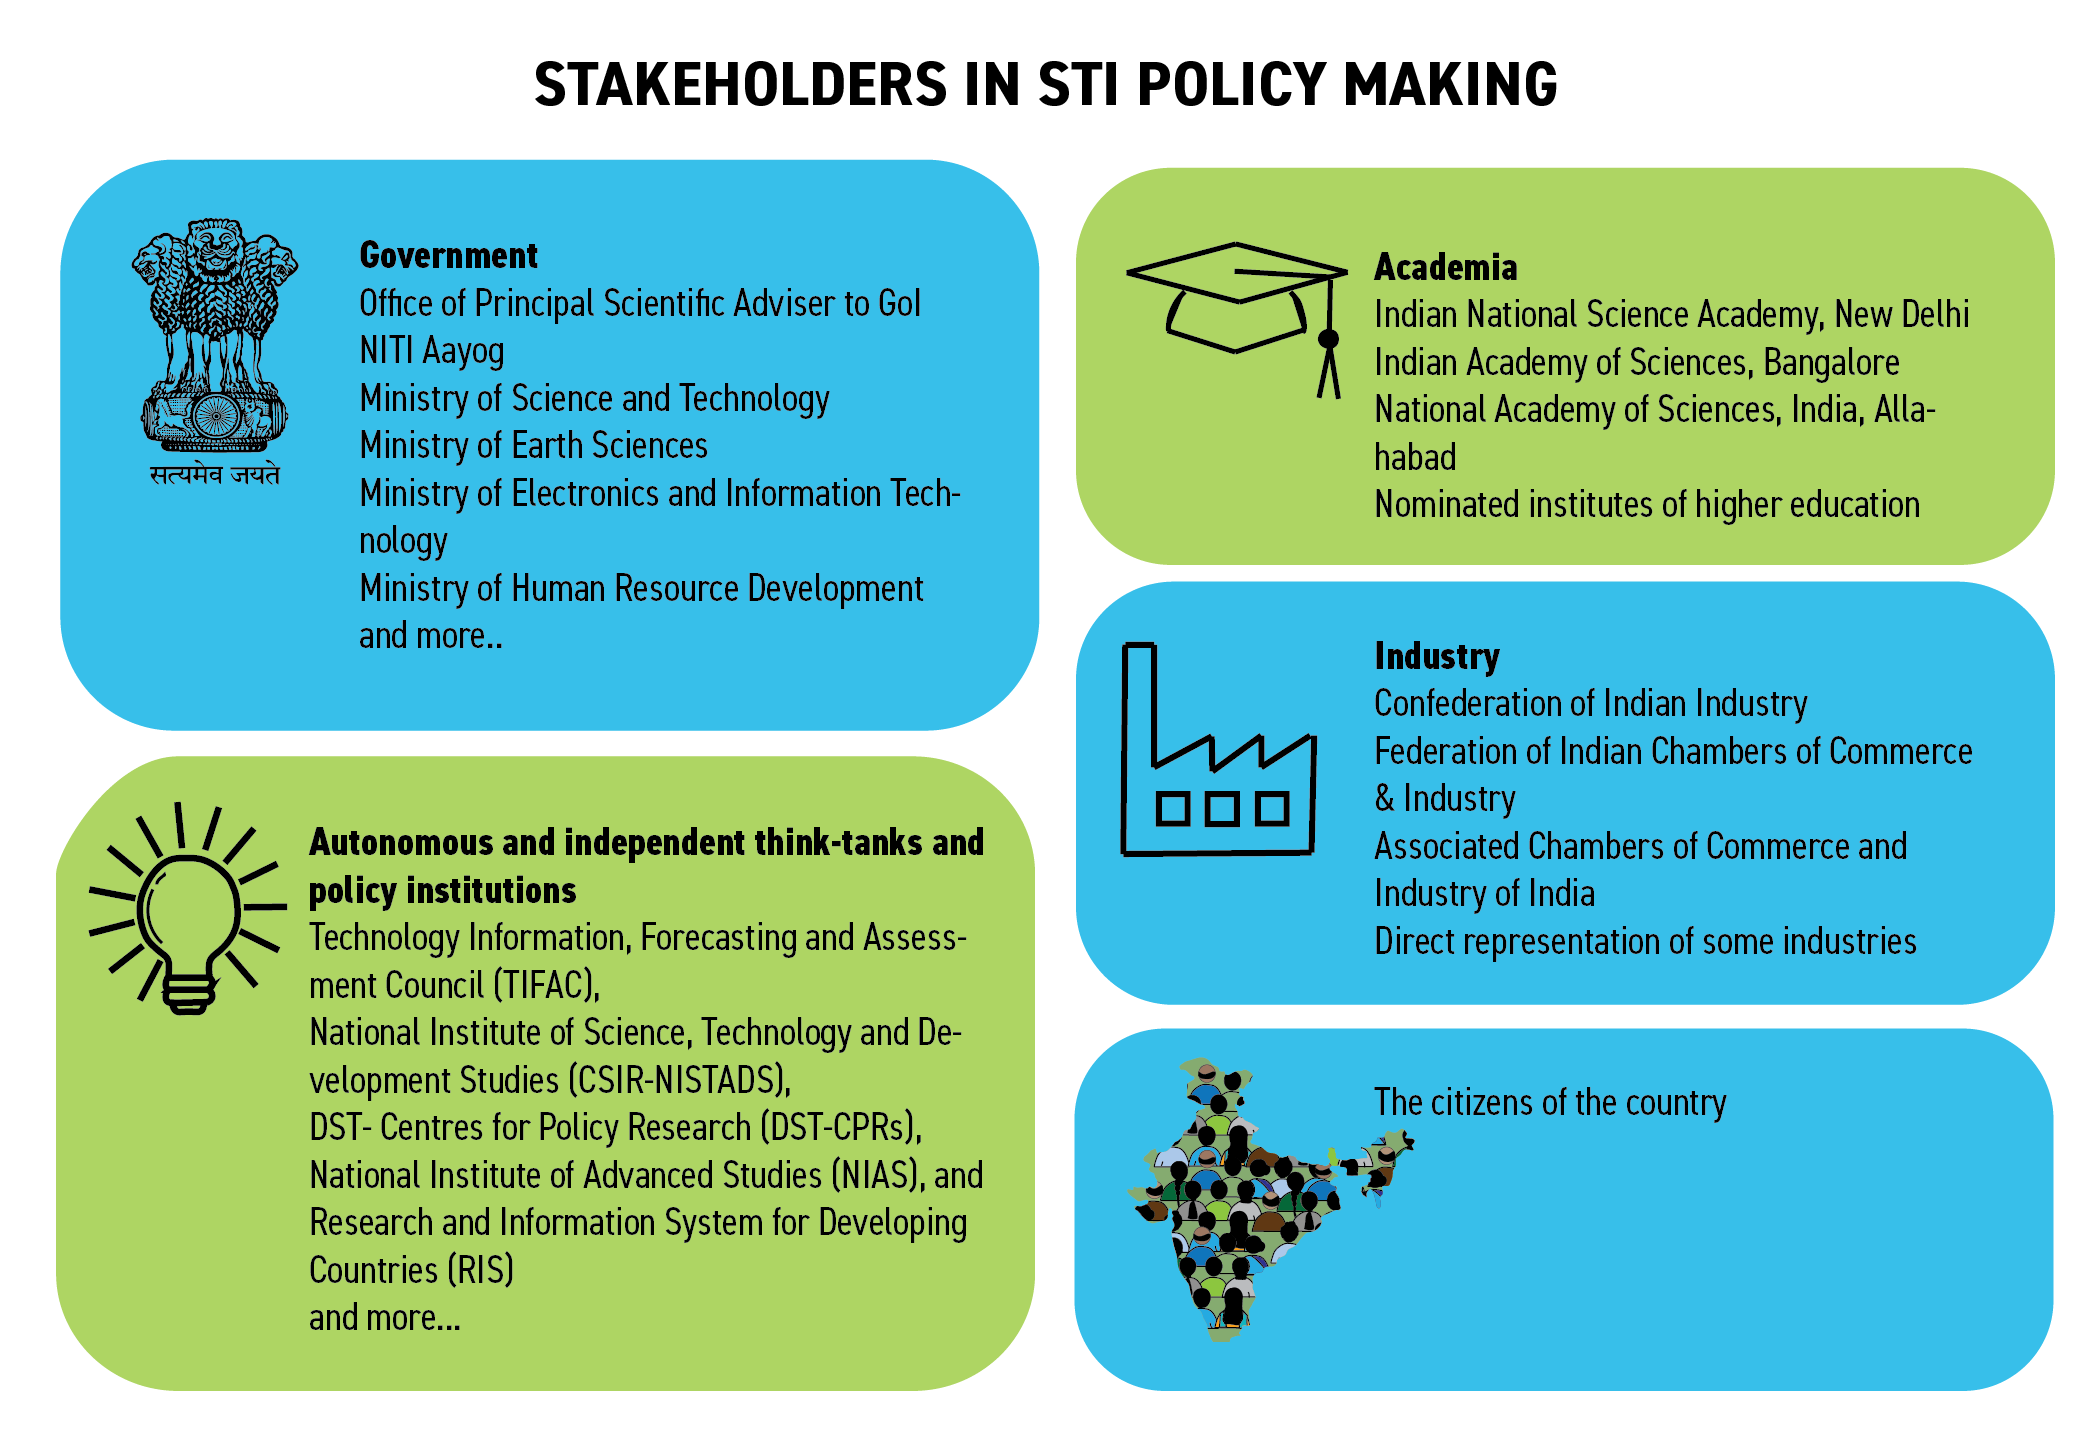 Stakeholders in STI Policy Making